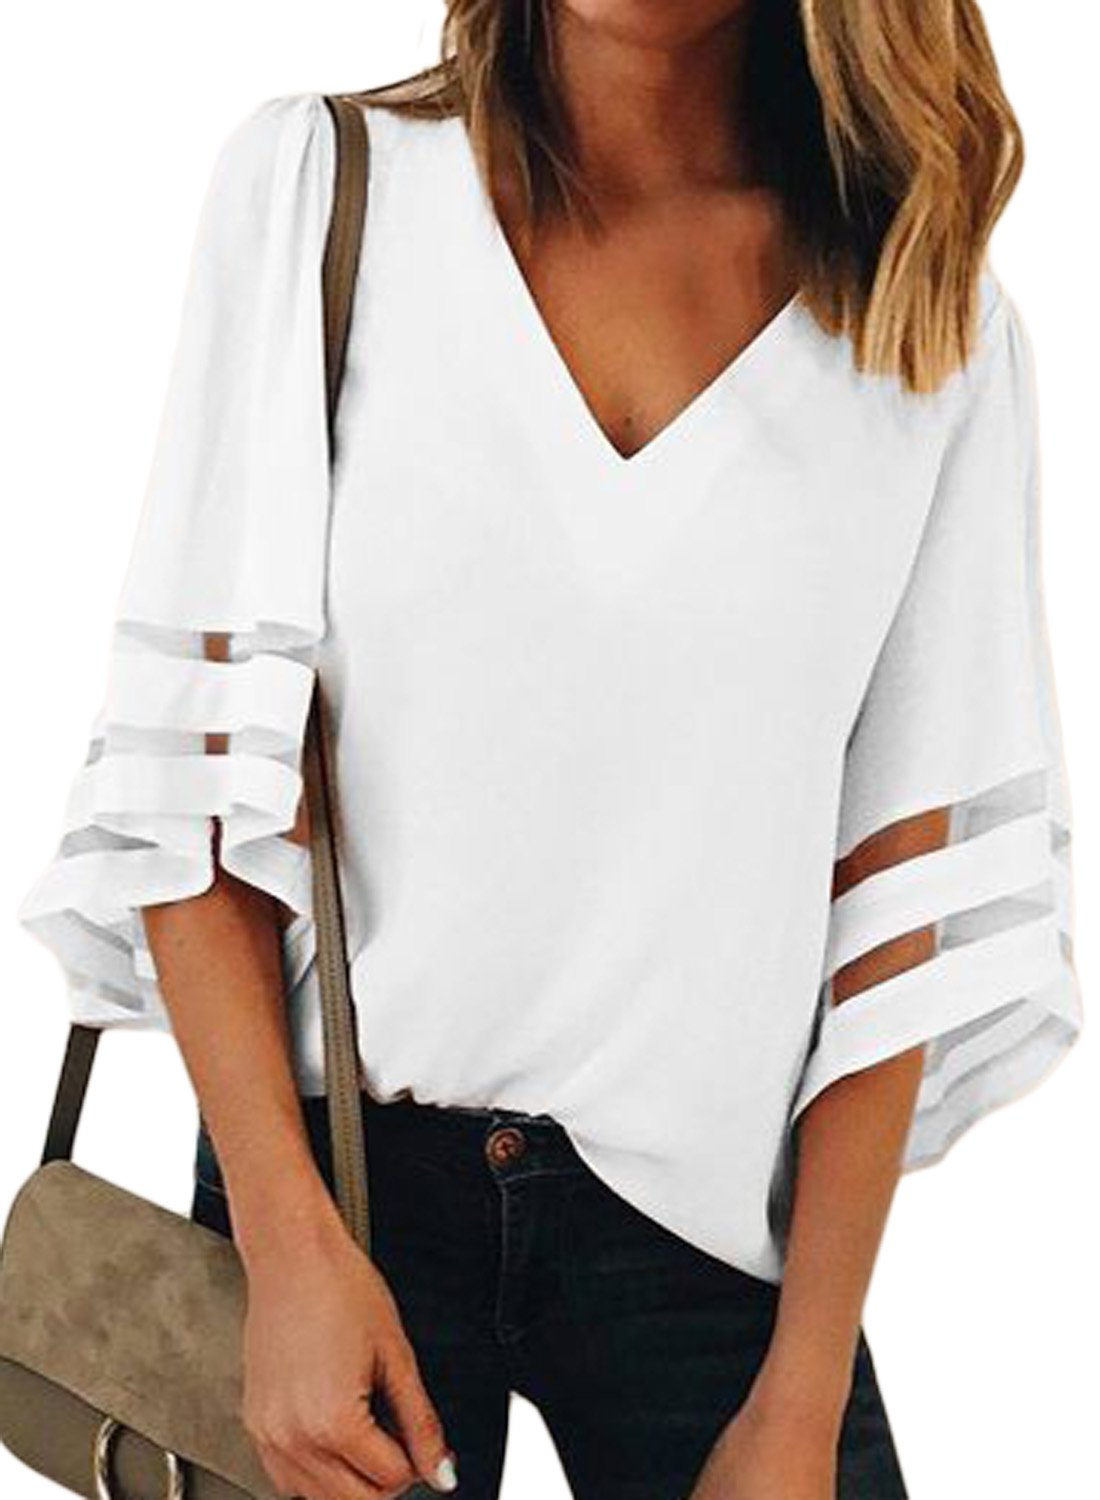 Towonder Womens 3/4 Bell Sleeve Deep V Neck Lace Patchwork Blouse Summer Chiffon Casual Loose Fit Shirt Flare Sleeve Tops (White, (US 16-18) X-Large)